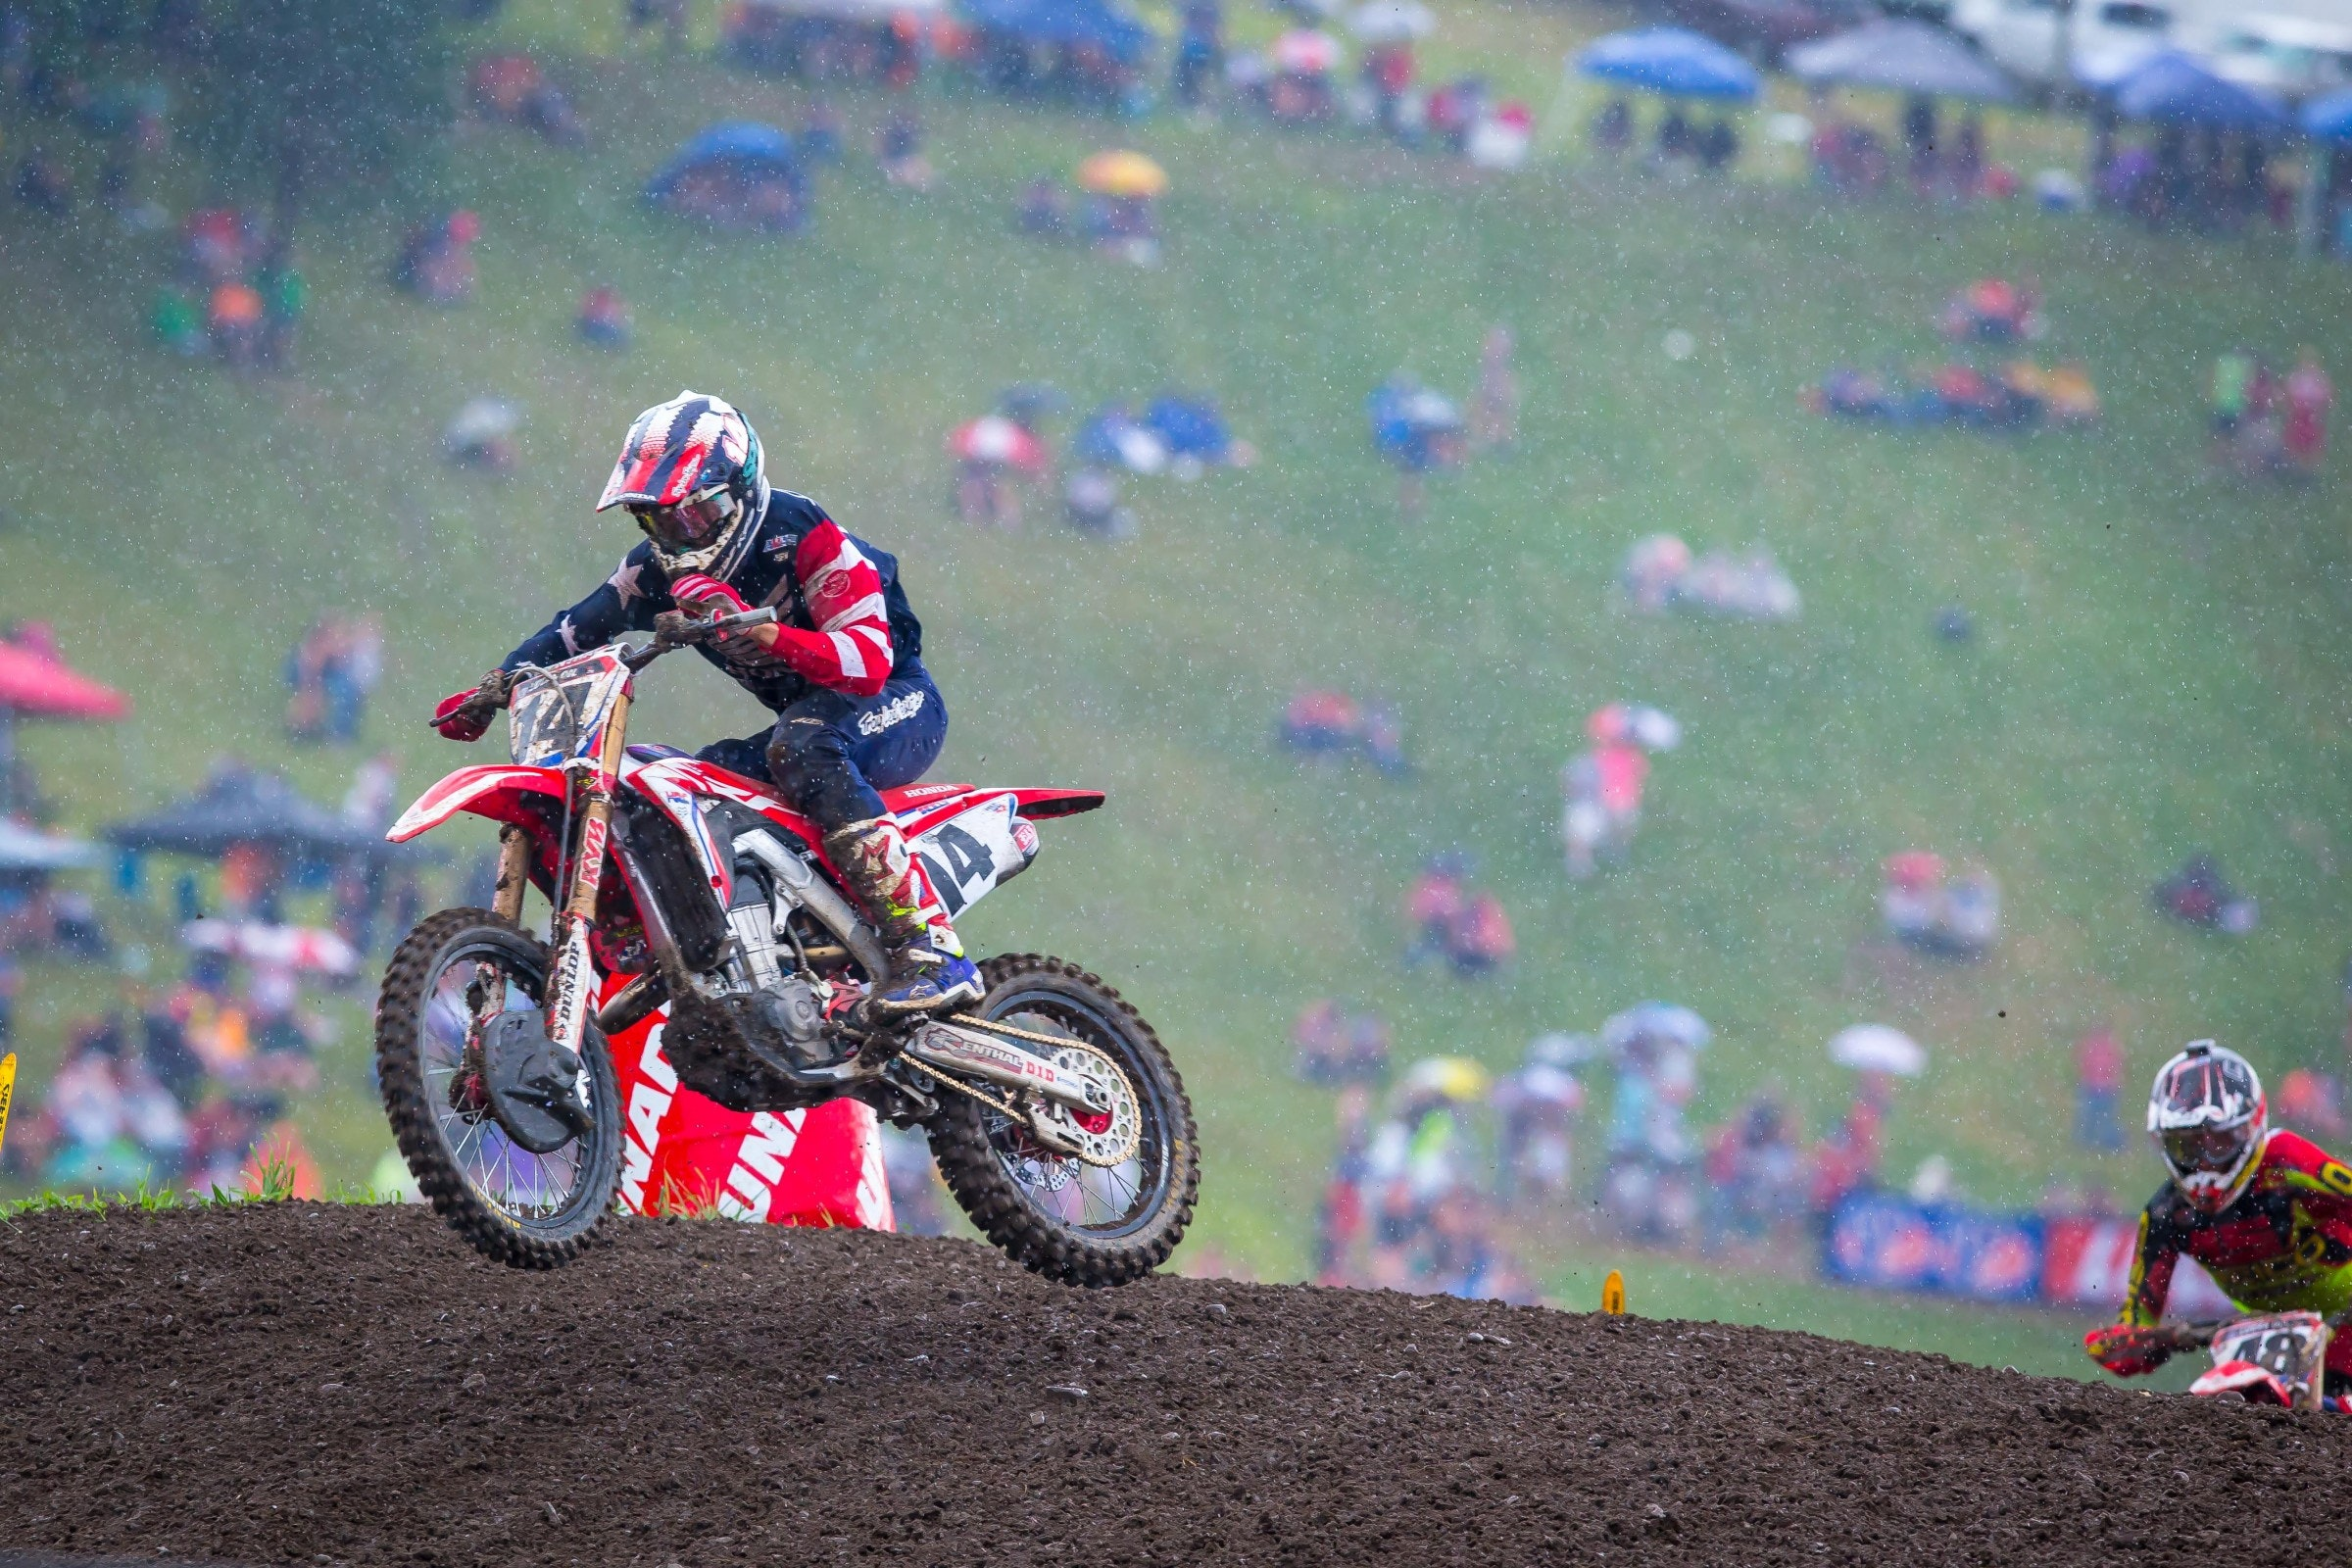 On the day he was named to Team USA, Cole Seely rode well in tough conditions for a third overall.